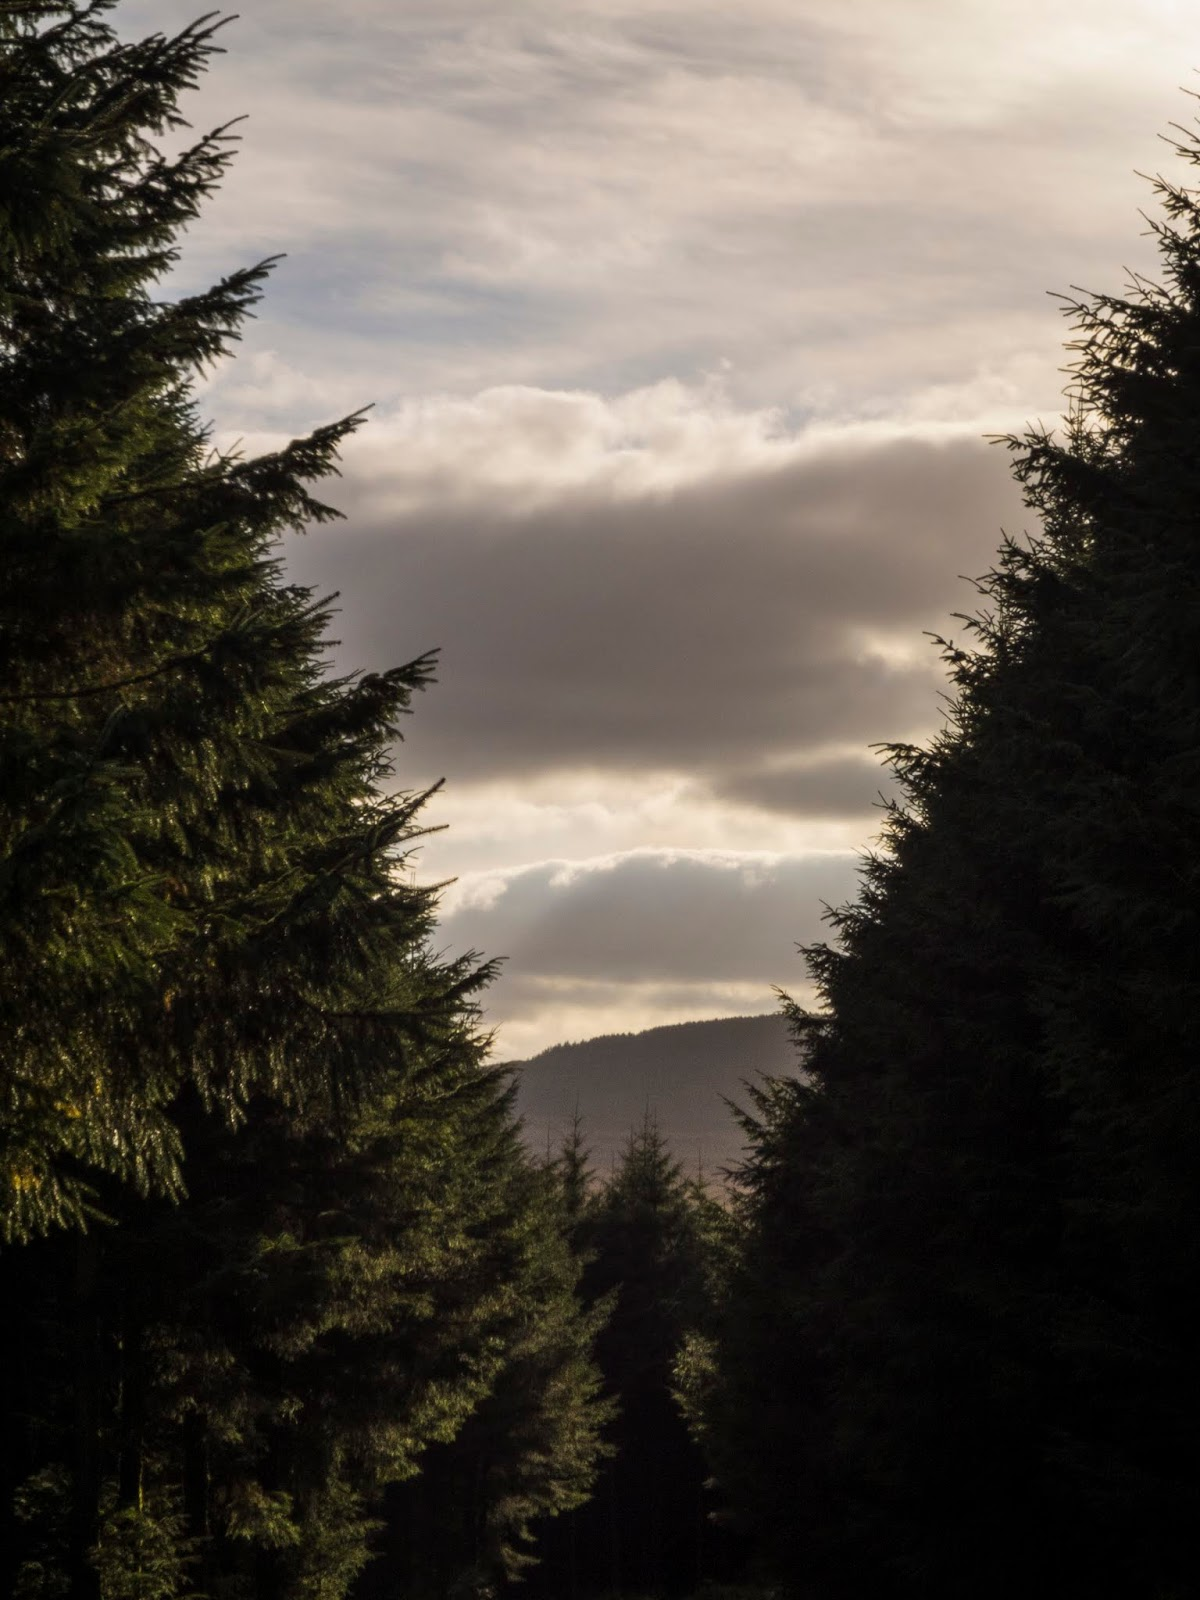 Sunlight shining on conifer trees with a mountain in the distance.